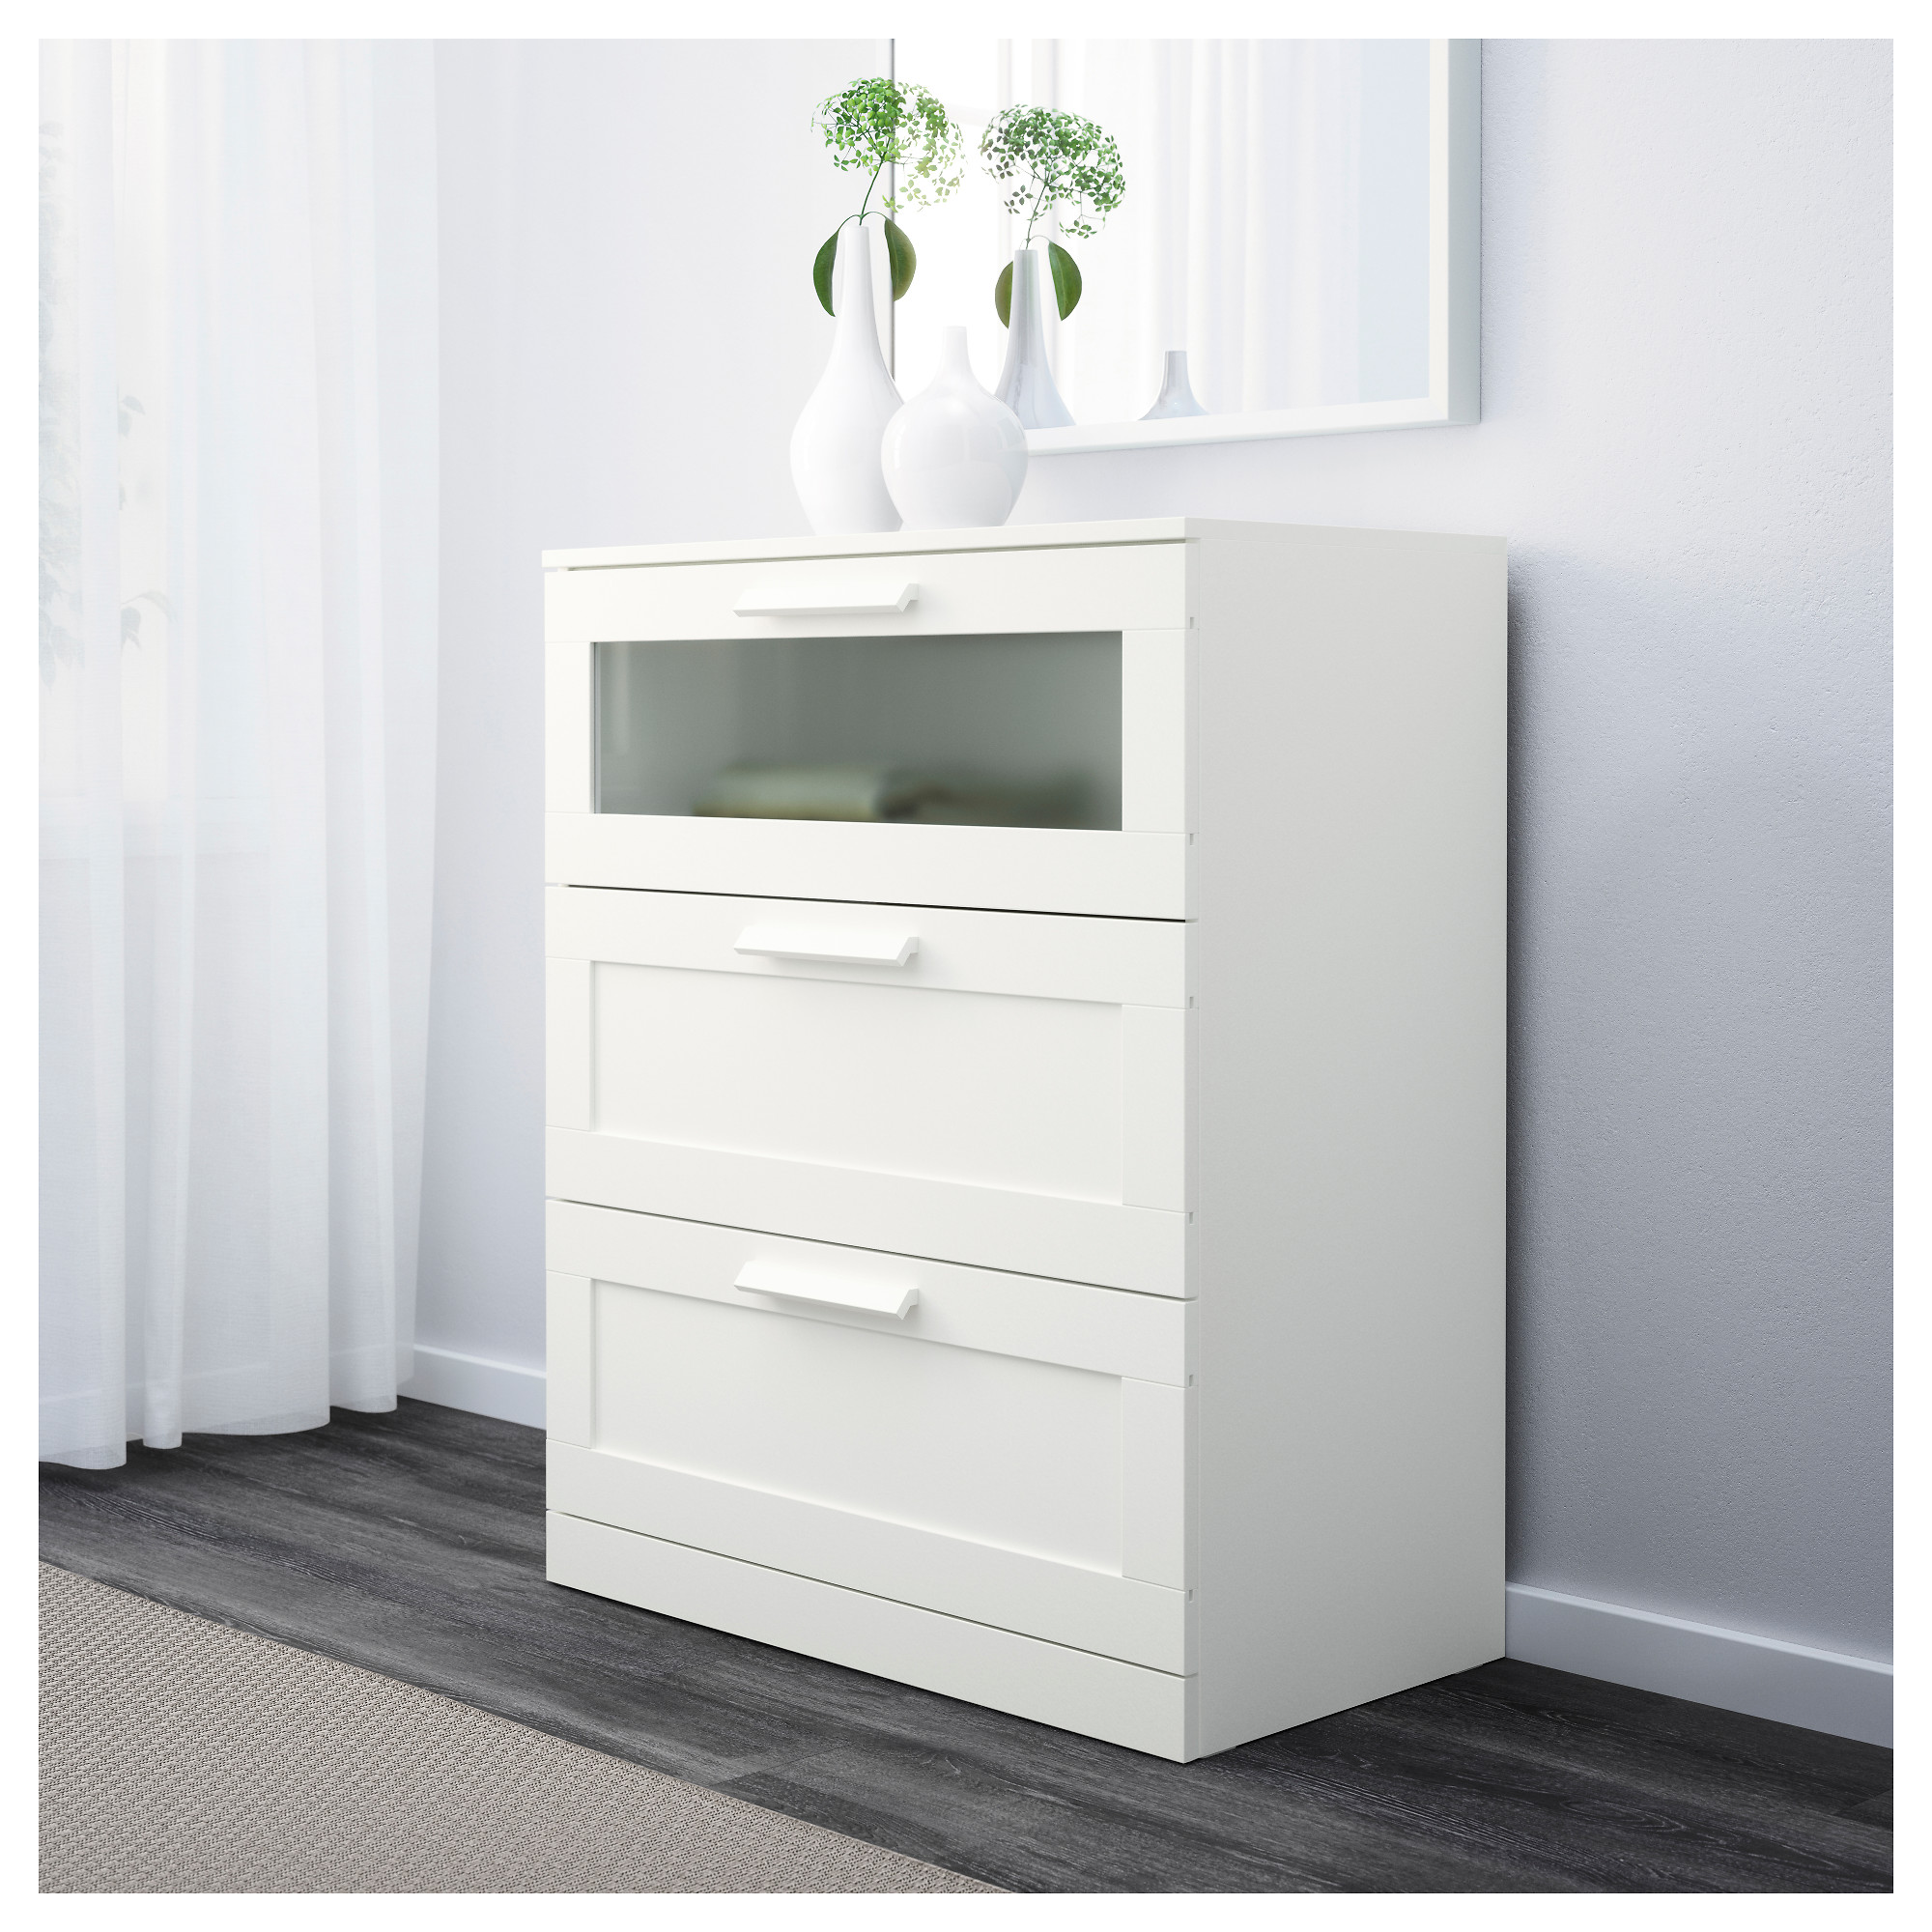 . BRIMNES 3 drawer chest   white frosted glass   IKEA